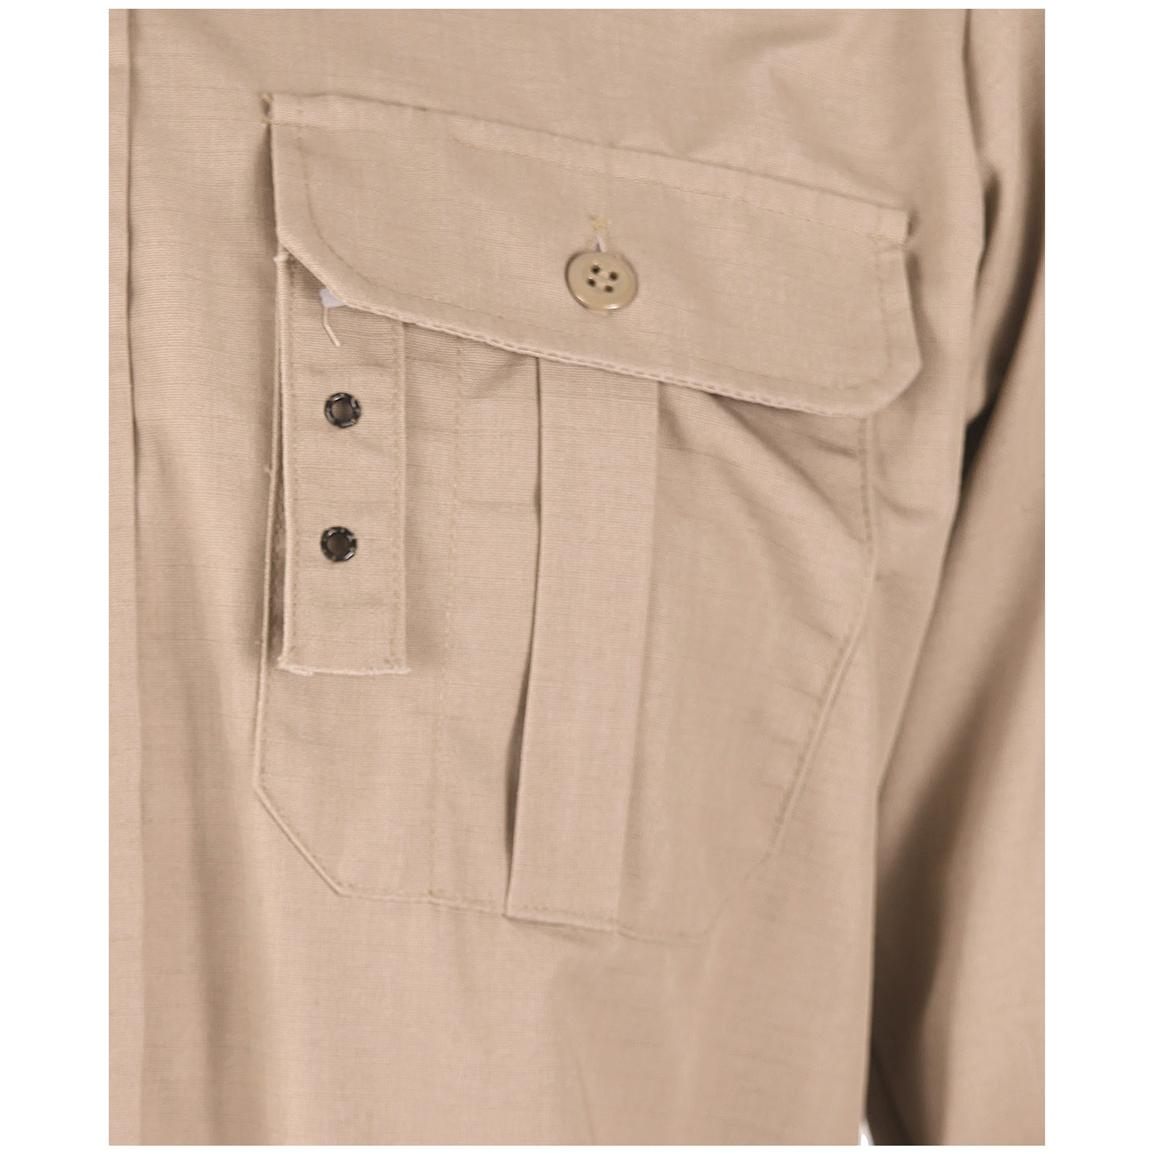 Two box-pleated chest pockets with button flaps